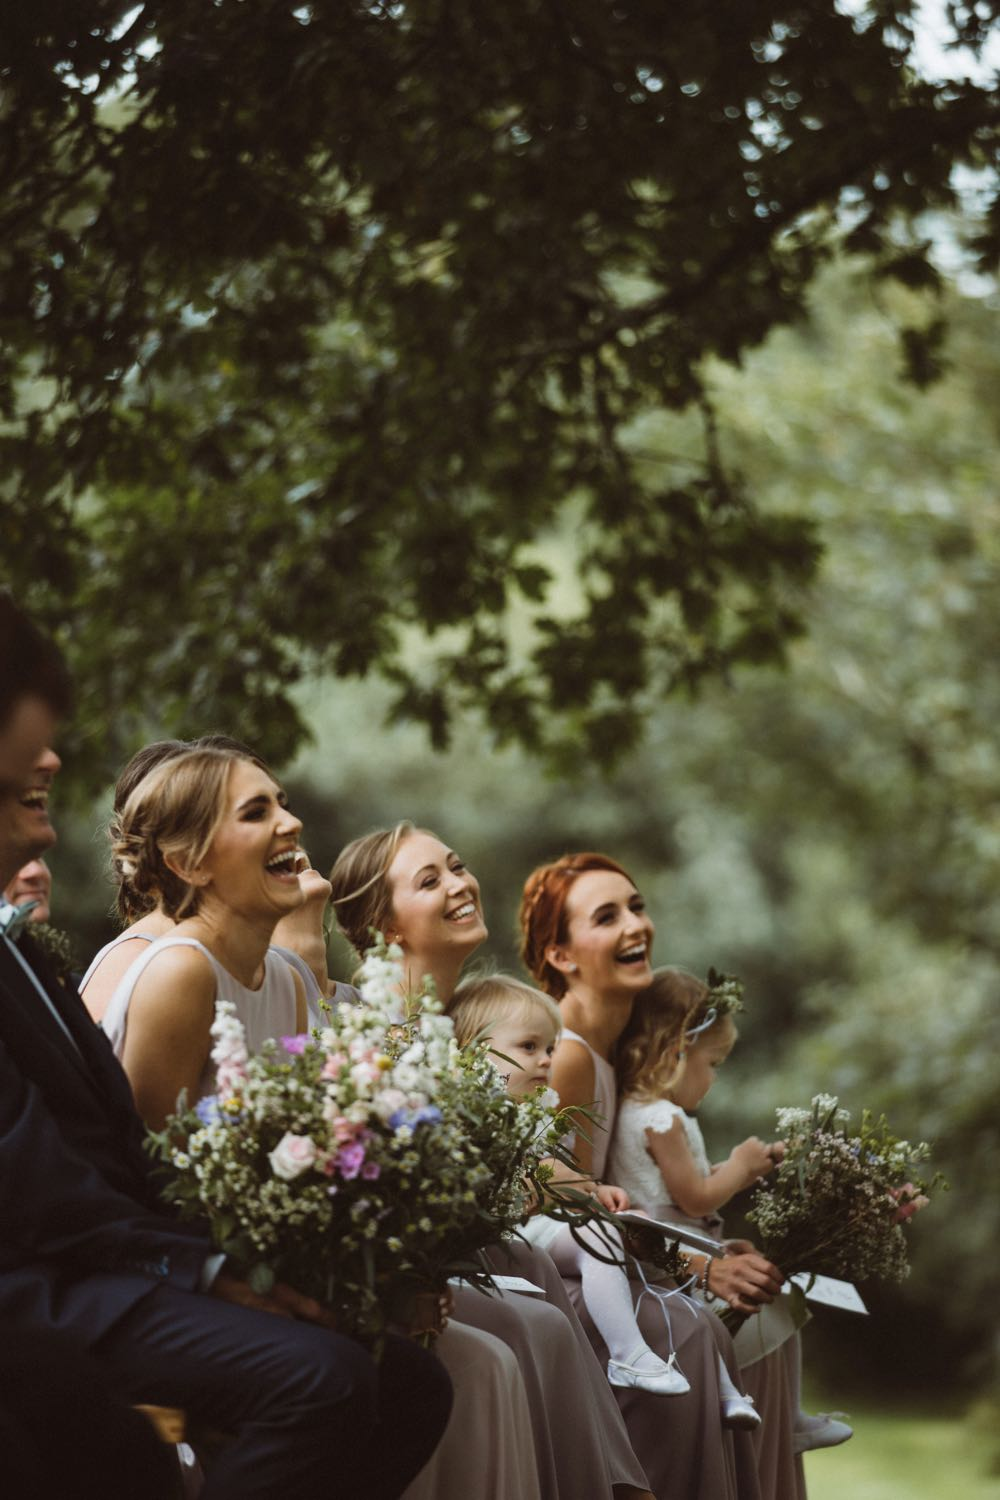 This is an image of 3 of the bridesmaids taken during the ceremony. They are shown from the shoulders up. They are surrounded by greenery. They are all smiling widely.